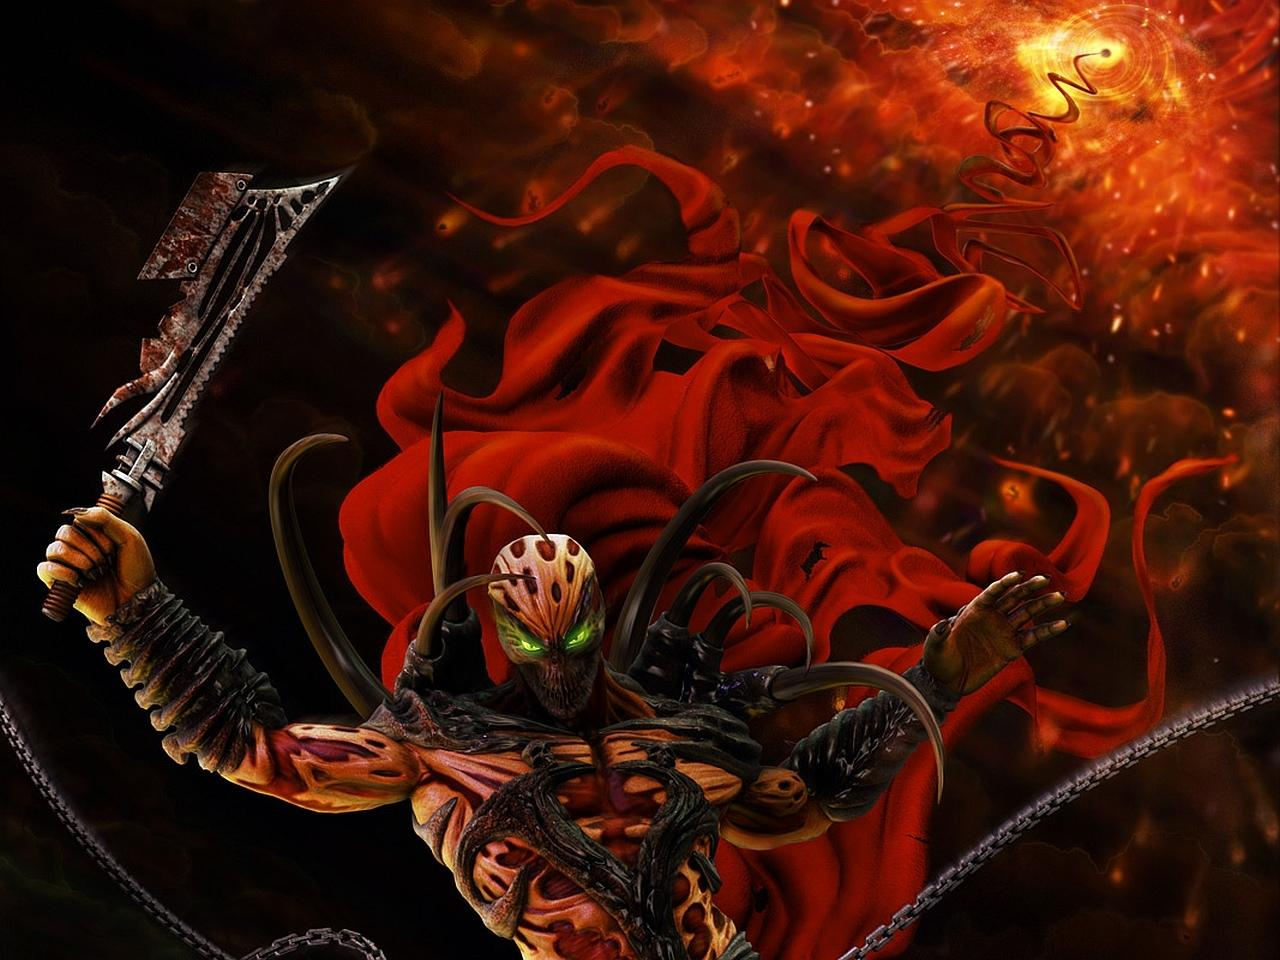 Curse Of Spawn wallpapers HD quality